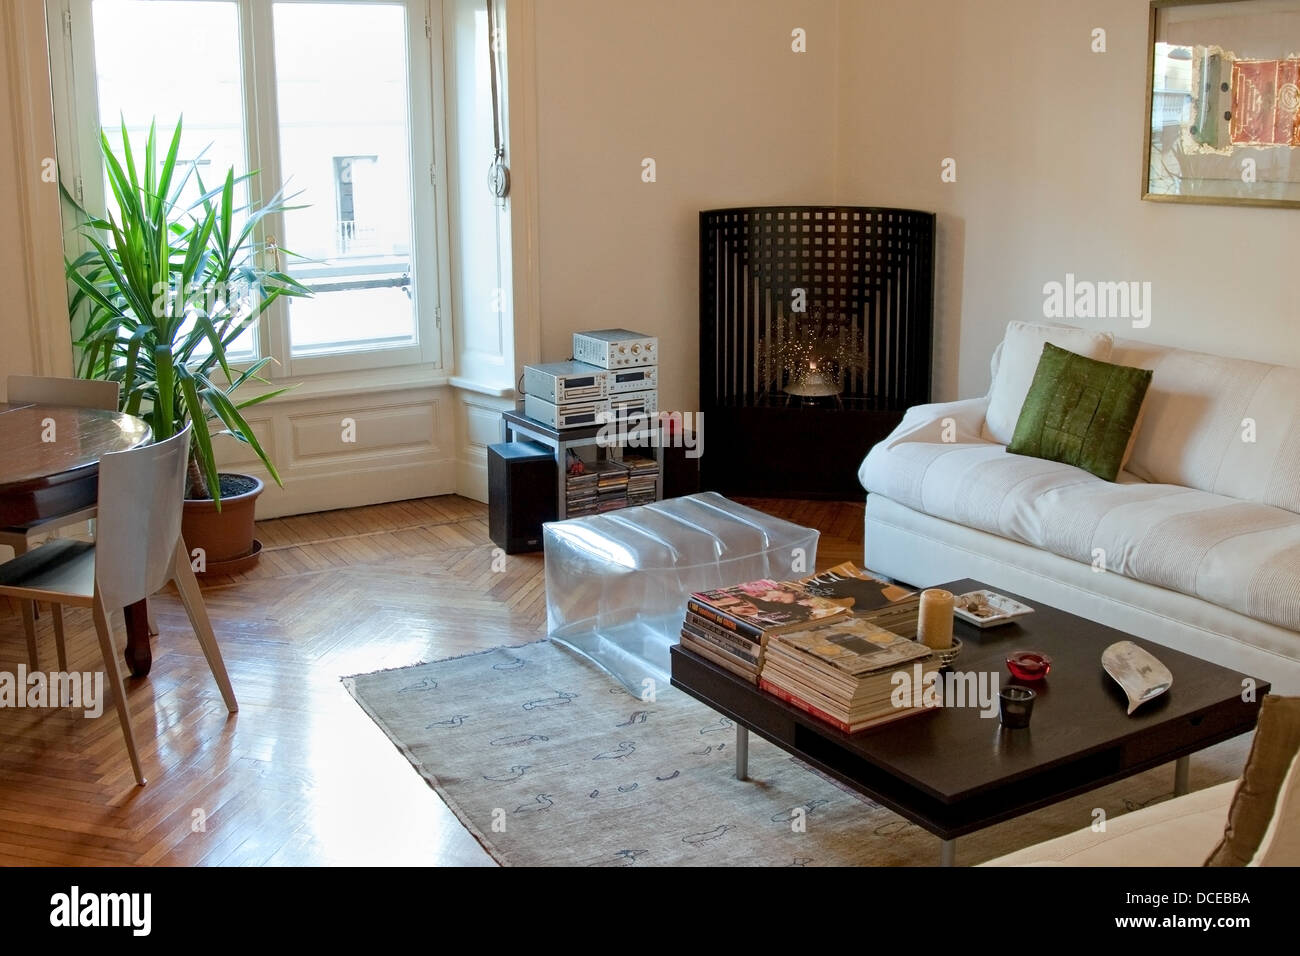 Apartment living room - Stock Image